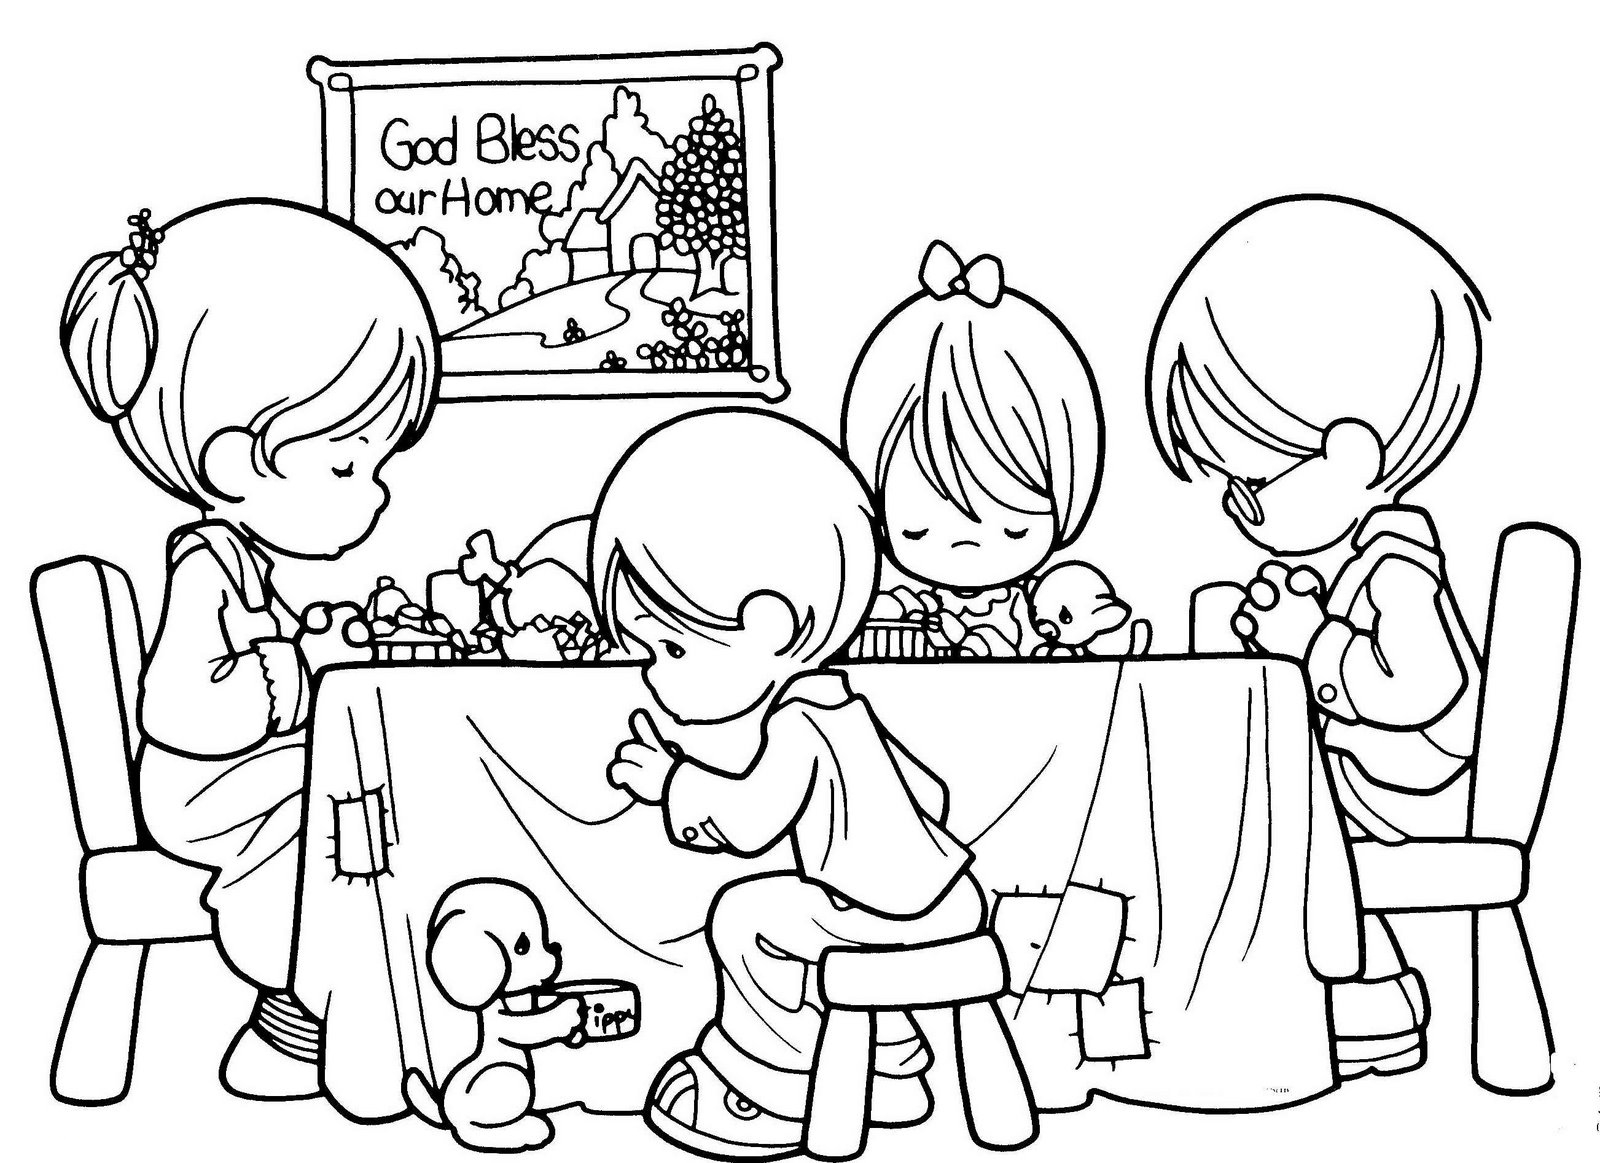 freee downloadable christian coloring pages - photo#2